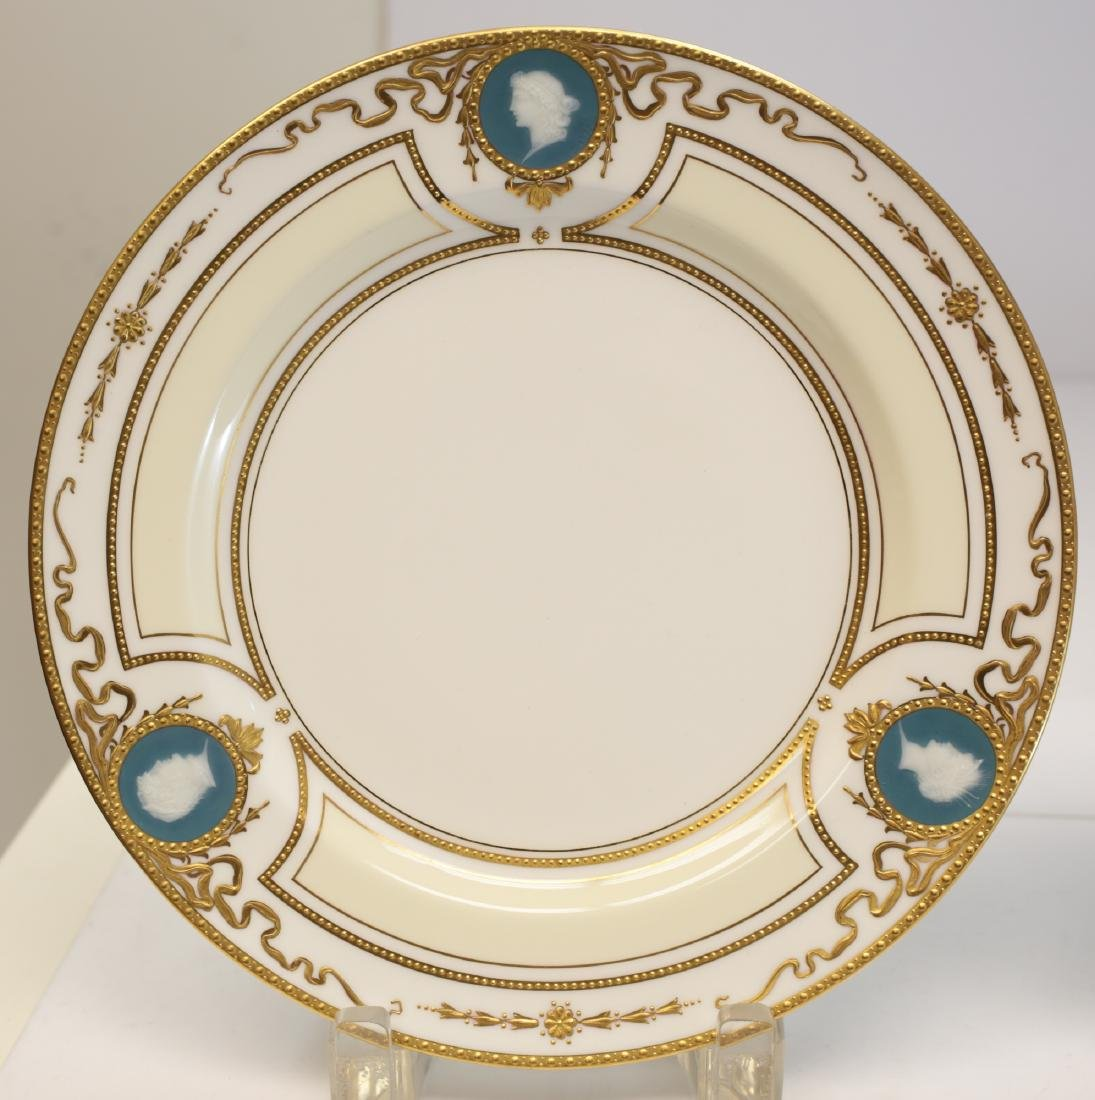 Minton for Tiffany Pate Sur Pate Luncheon Plates - 2